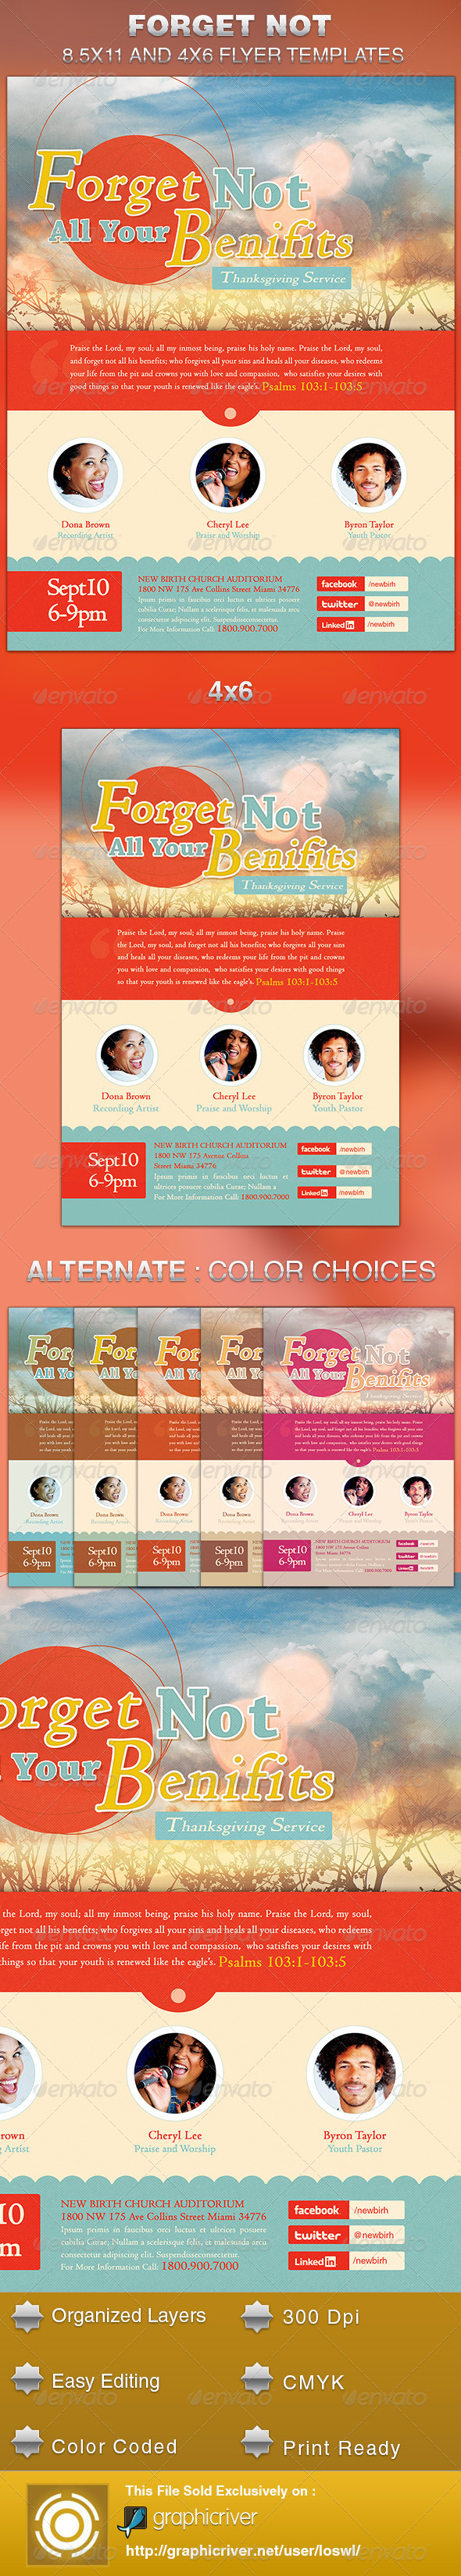 Forget Not All Your Benefits Church Flyer Template - Church Flyers